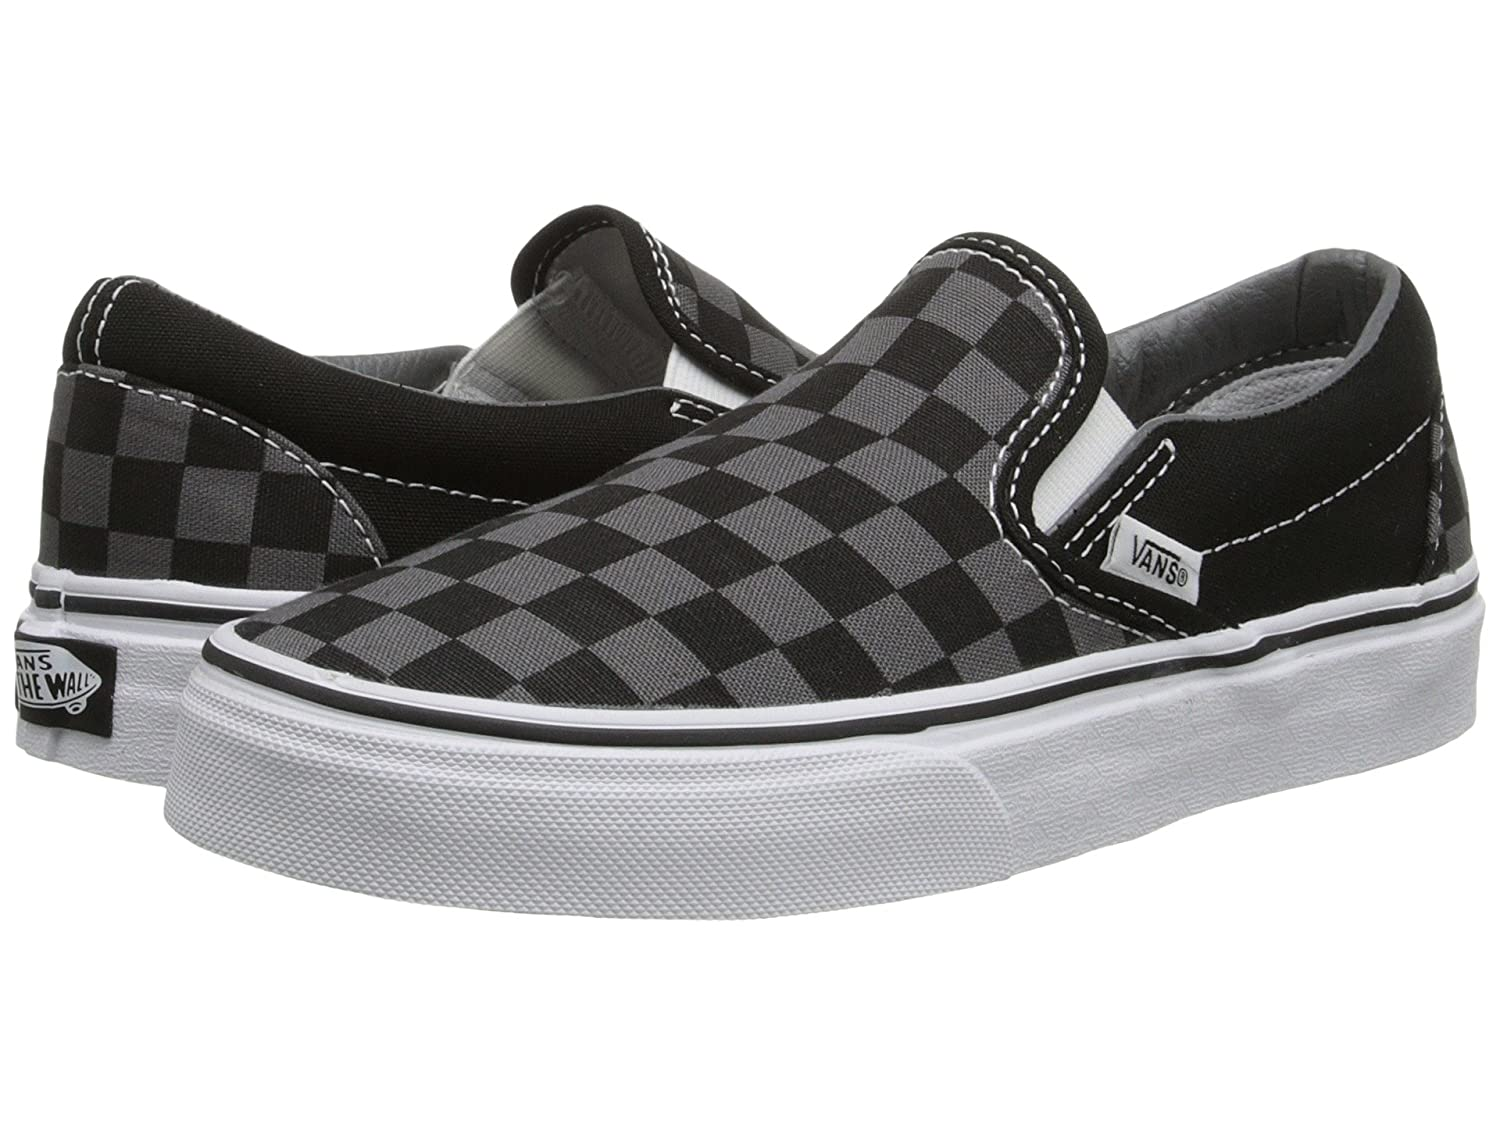 Vans Men's Classic Slip On (Suede & Suiting) Skateboarding Shoes B01M60UOAU 9.5 B(M) US Women / 8 D(M) US Men|Black/Pewter Checkerboard